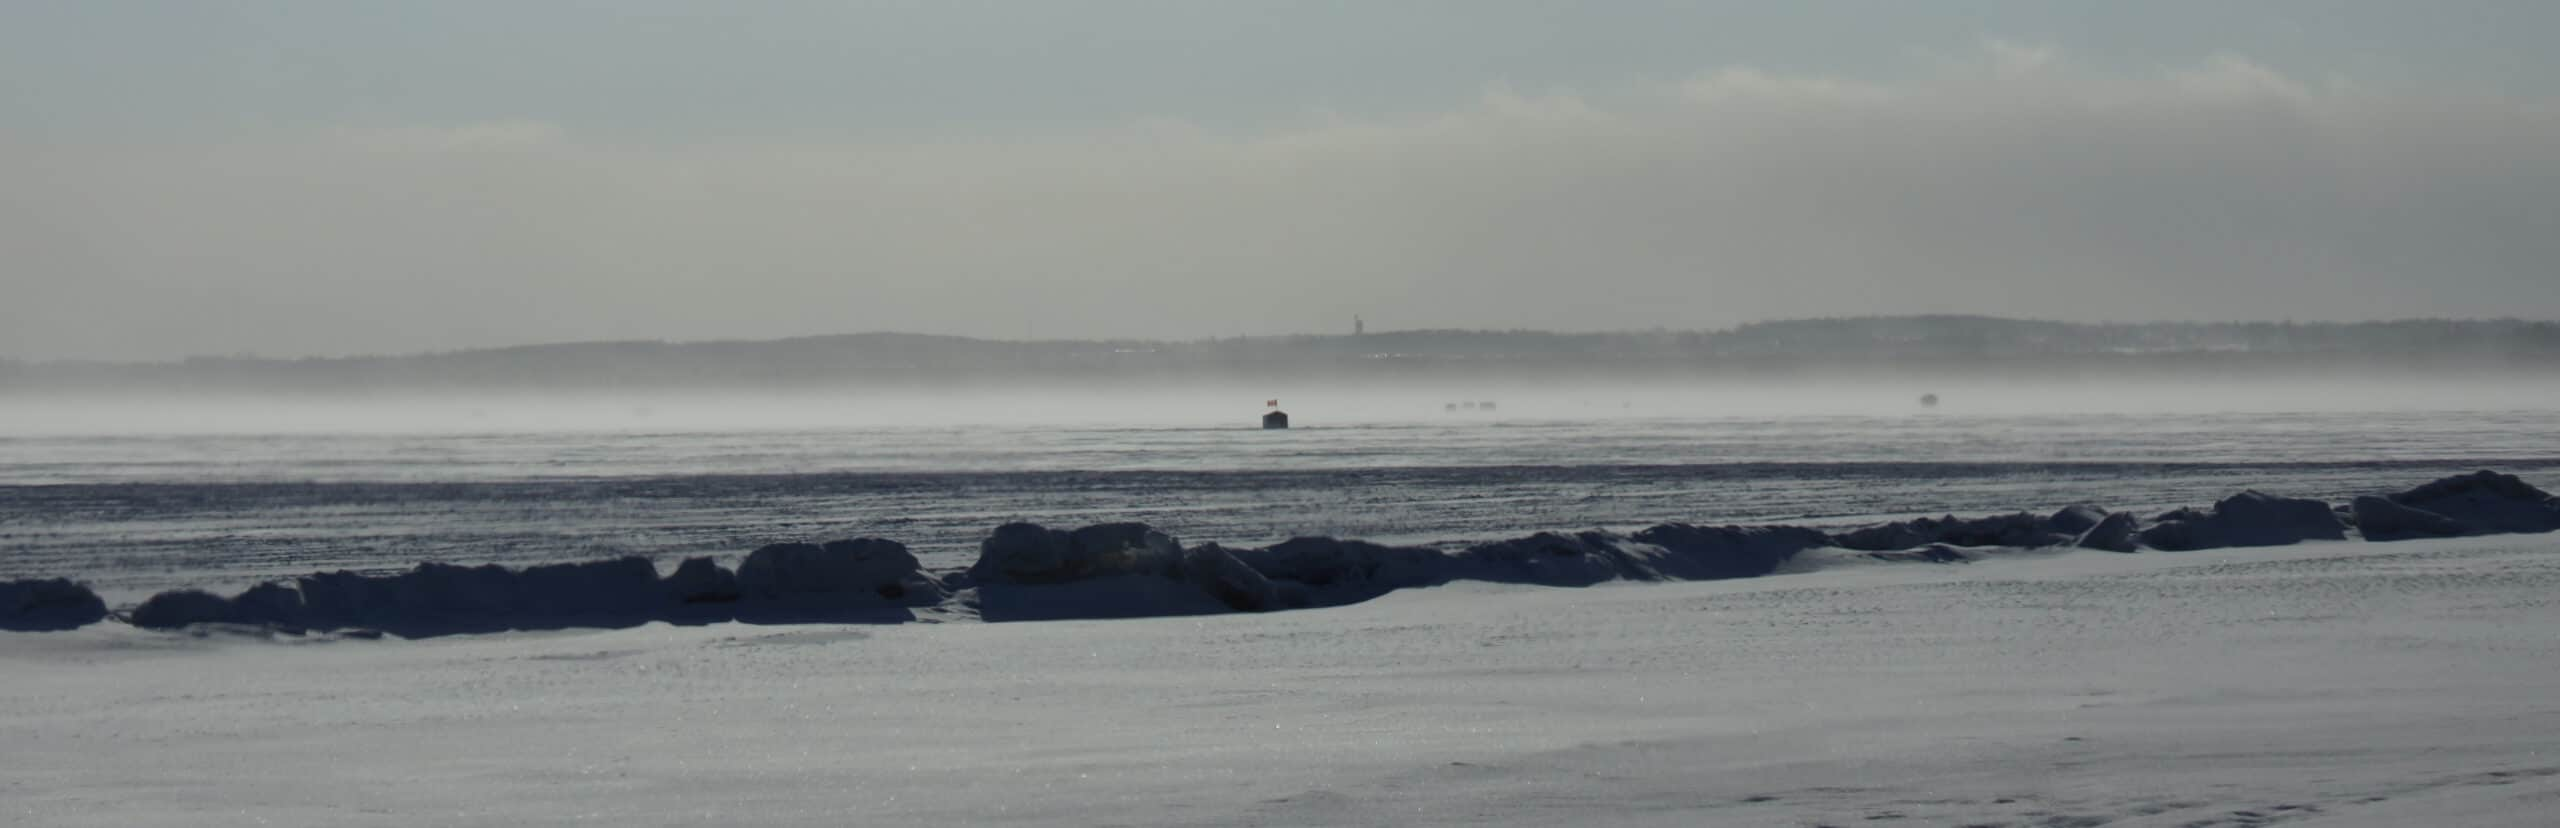 Ice Fishing on Lake Simcoe, Ontario, Canada